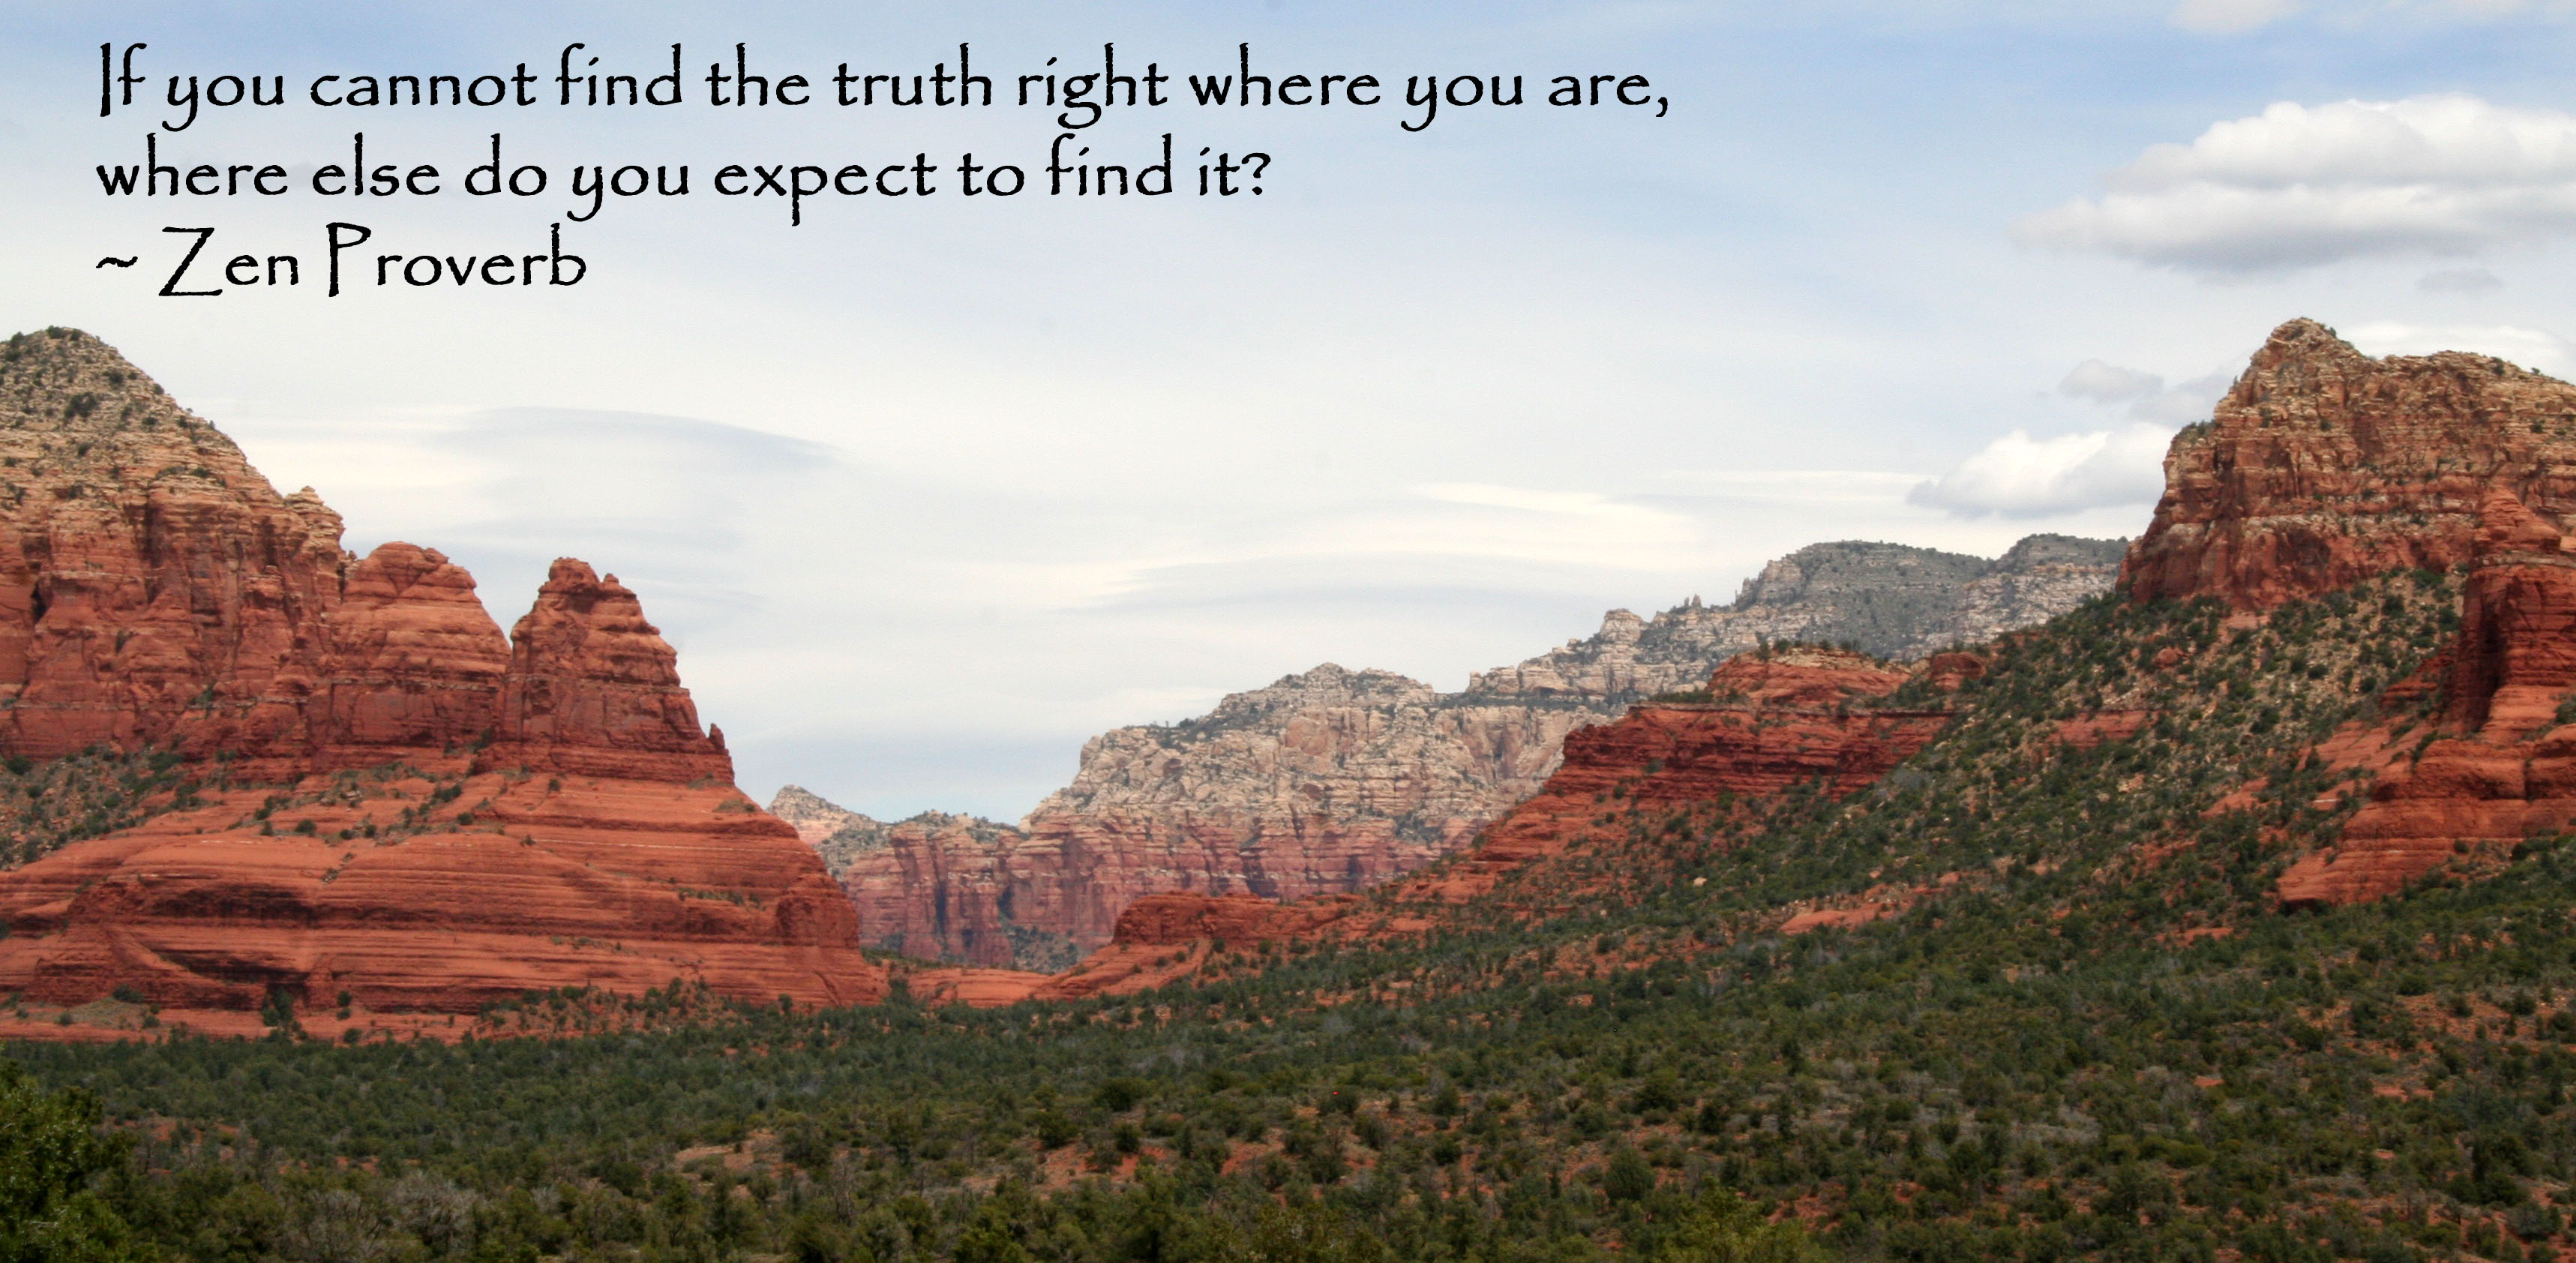 """""""If you cannot find the truth right where you are, where else do you expect to find it?"""" - Zen proverb written on a photo of the Grand Canyon"""